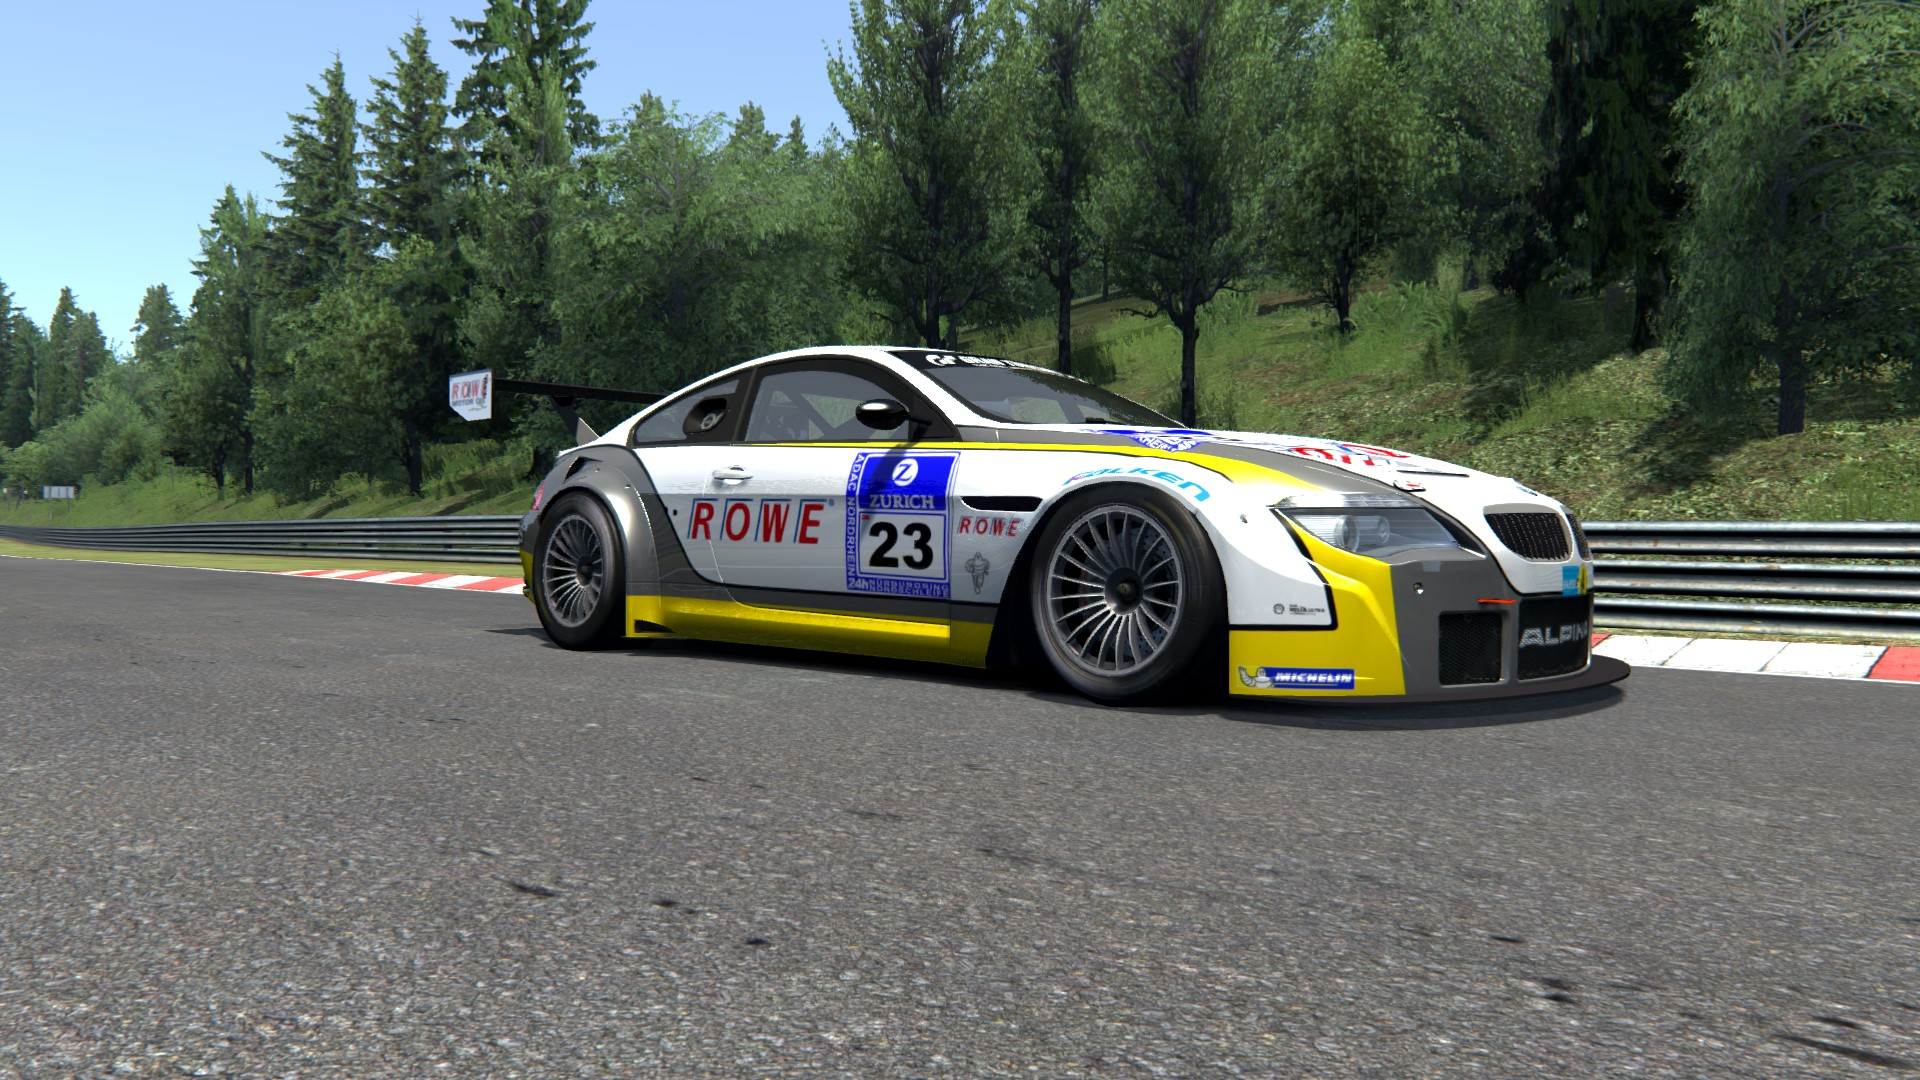 Screenshot_alpinab6_gt3_ks_nordschleife_17-12-115-12-1-17.jpg